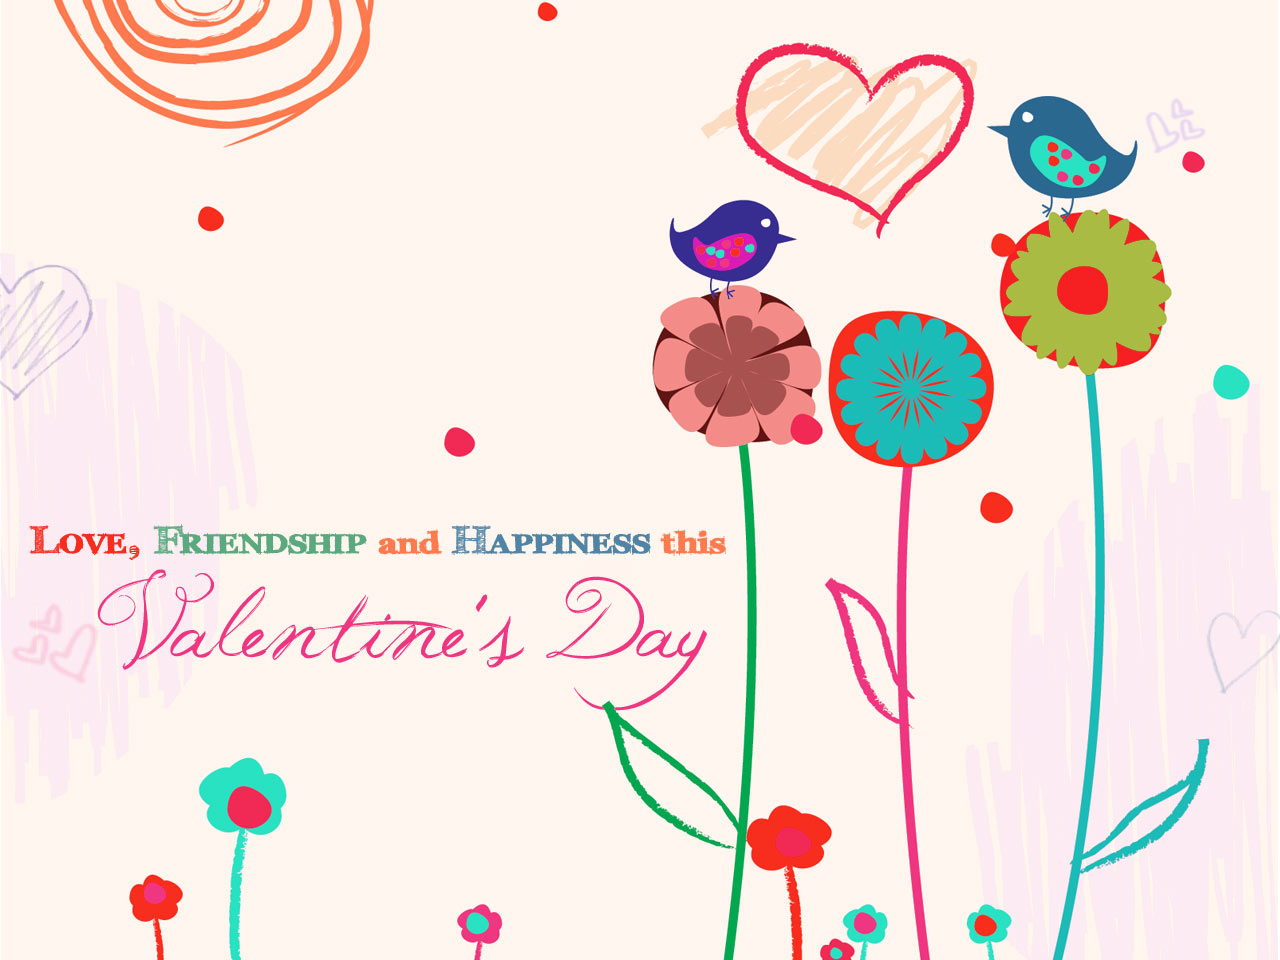 Valentines Day Wallpapers and Backgrounds 1280x960